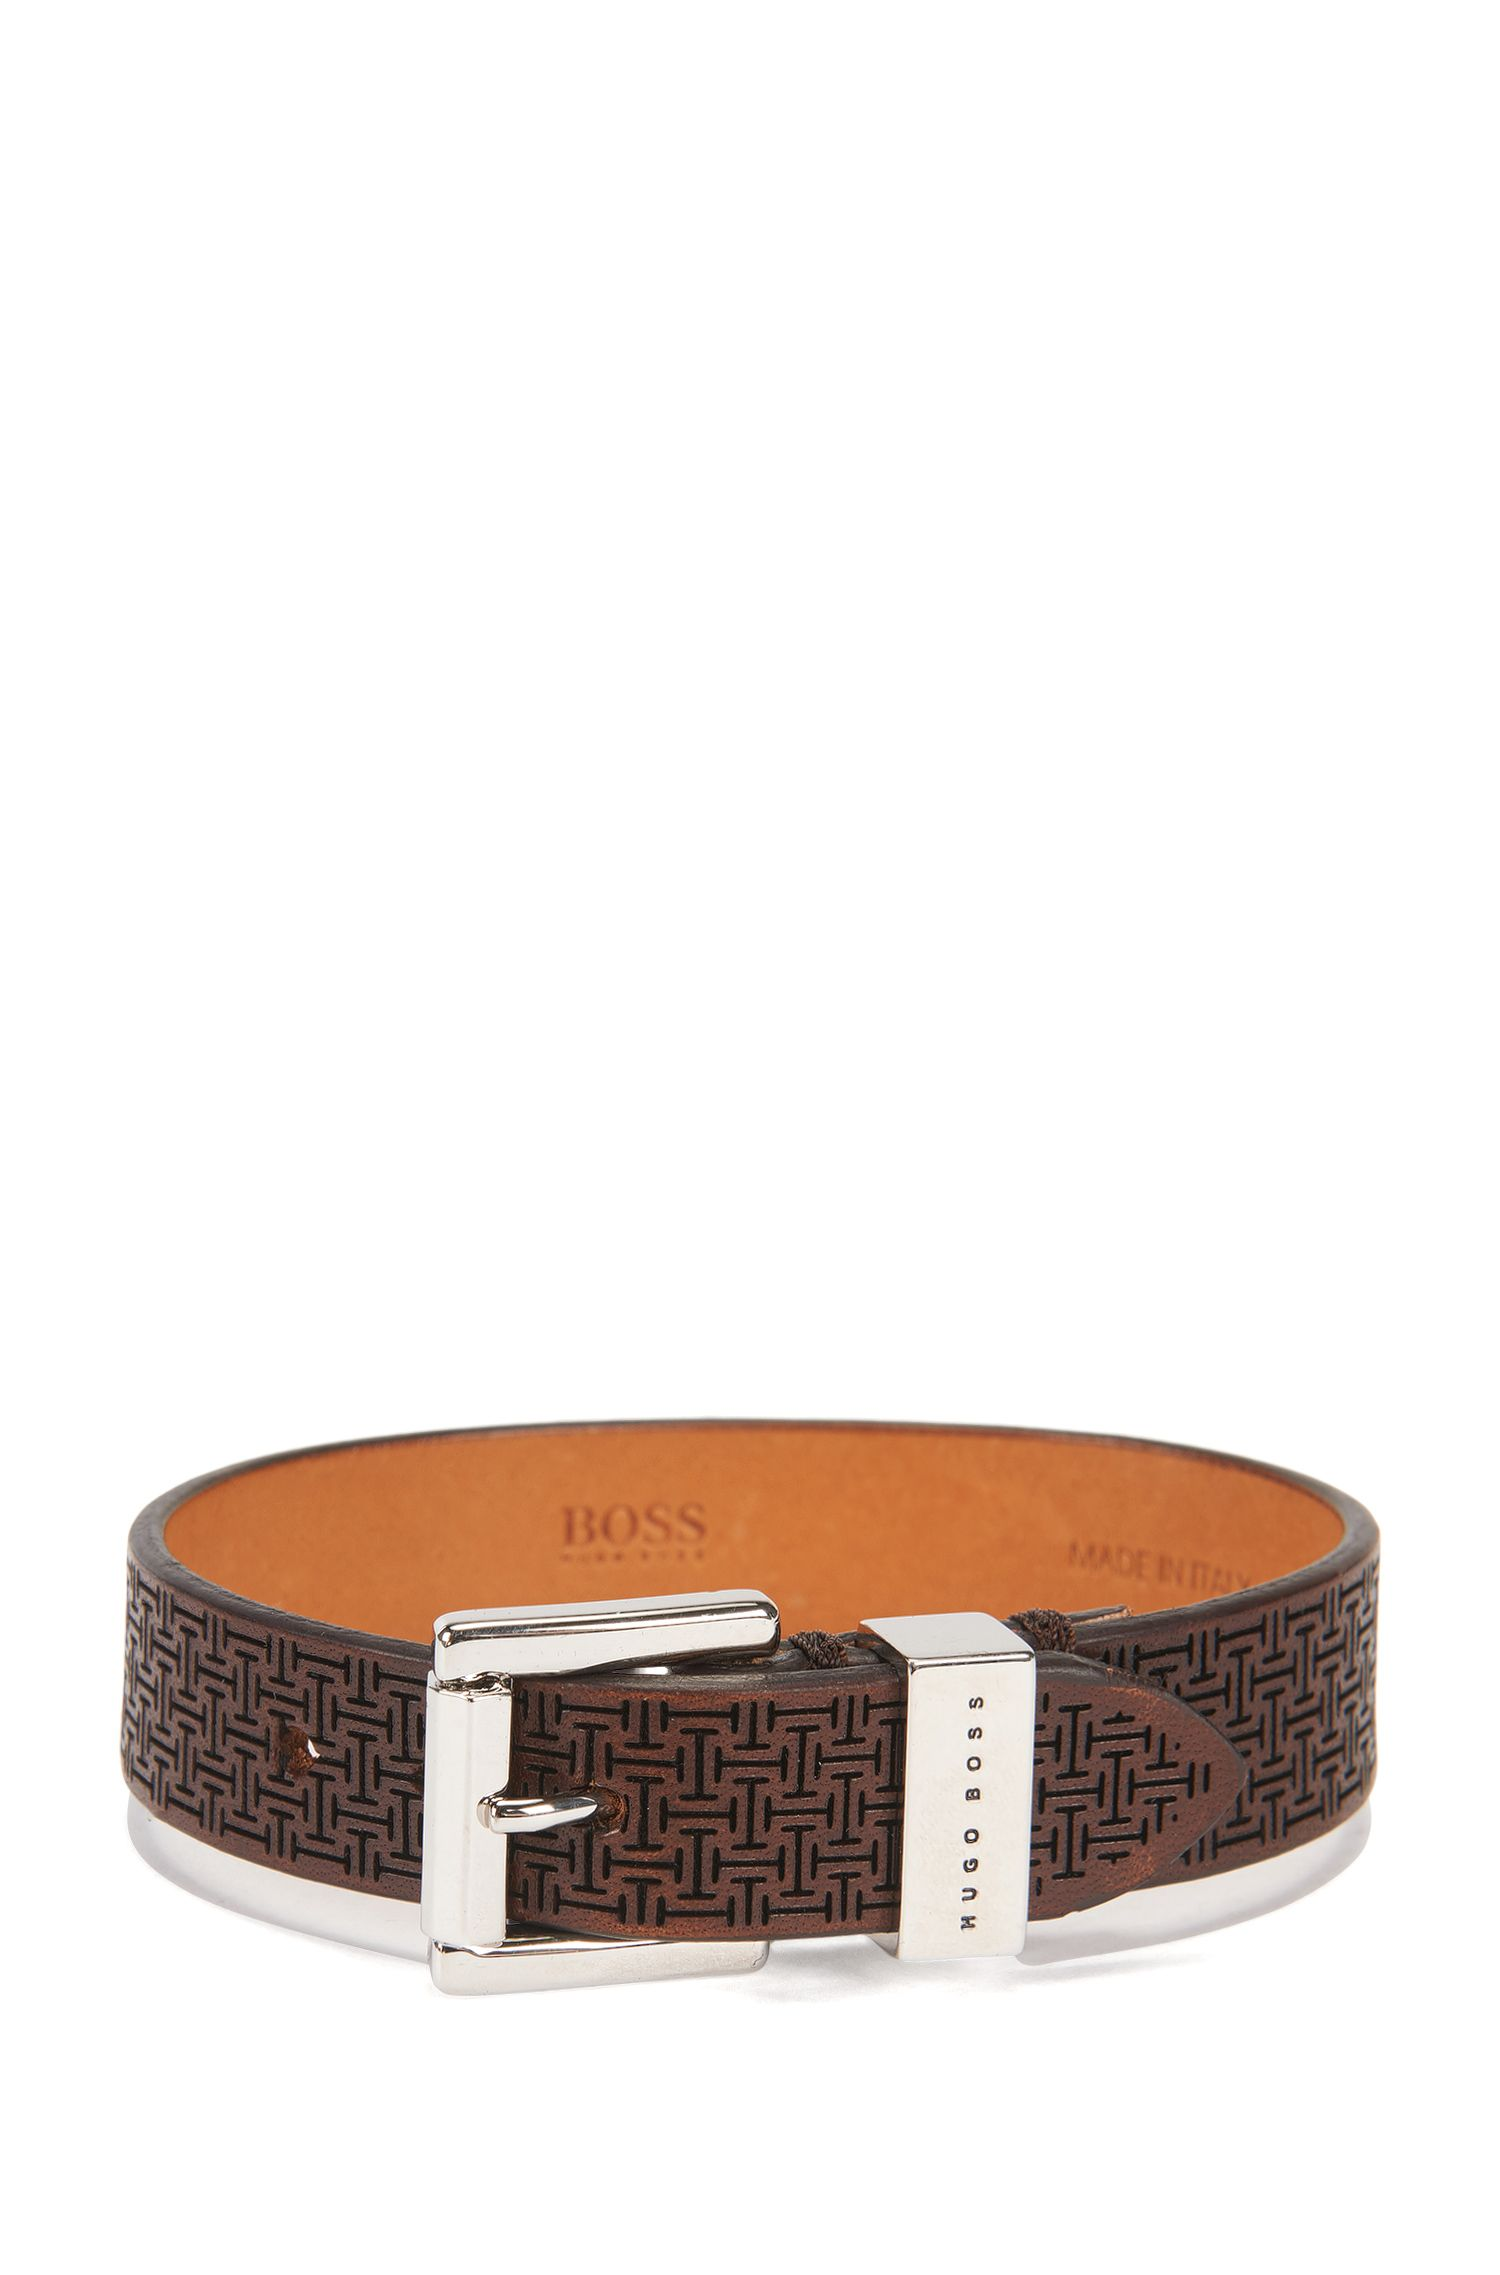 Micro-lasered belt in rich leather